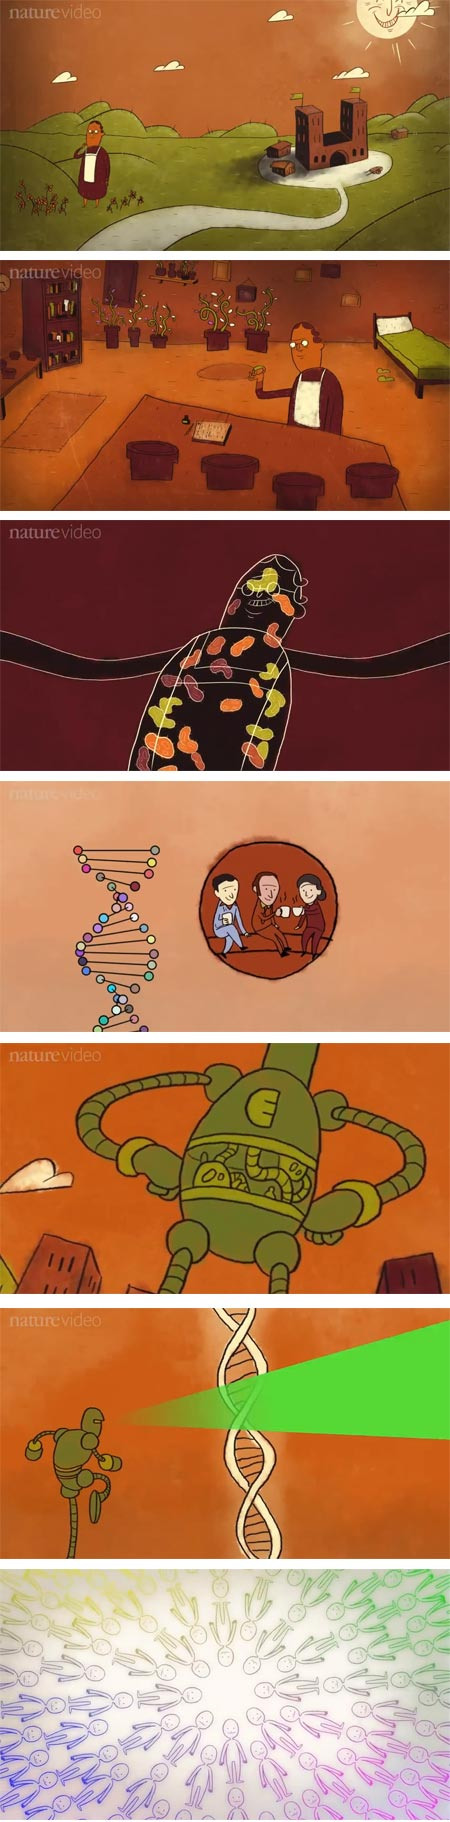 The Story of You: ENCODE and the human genome